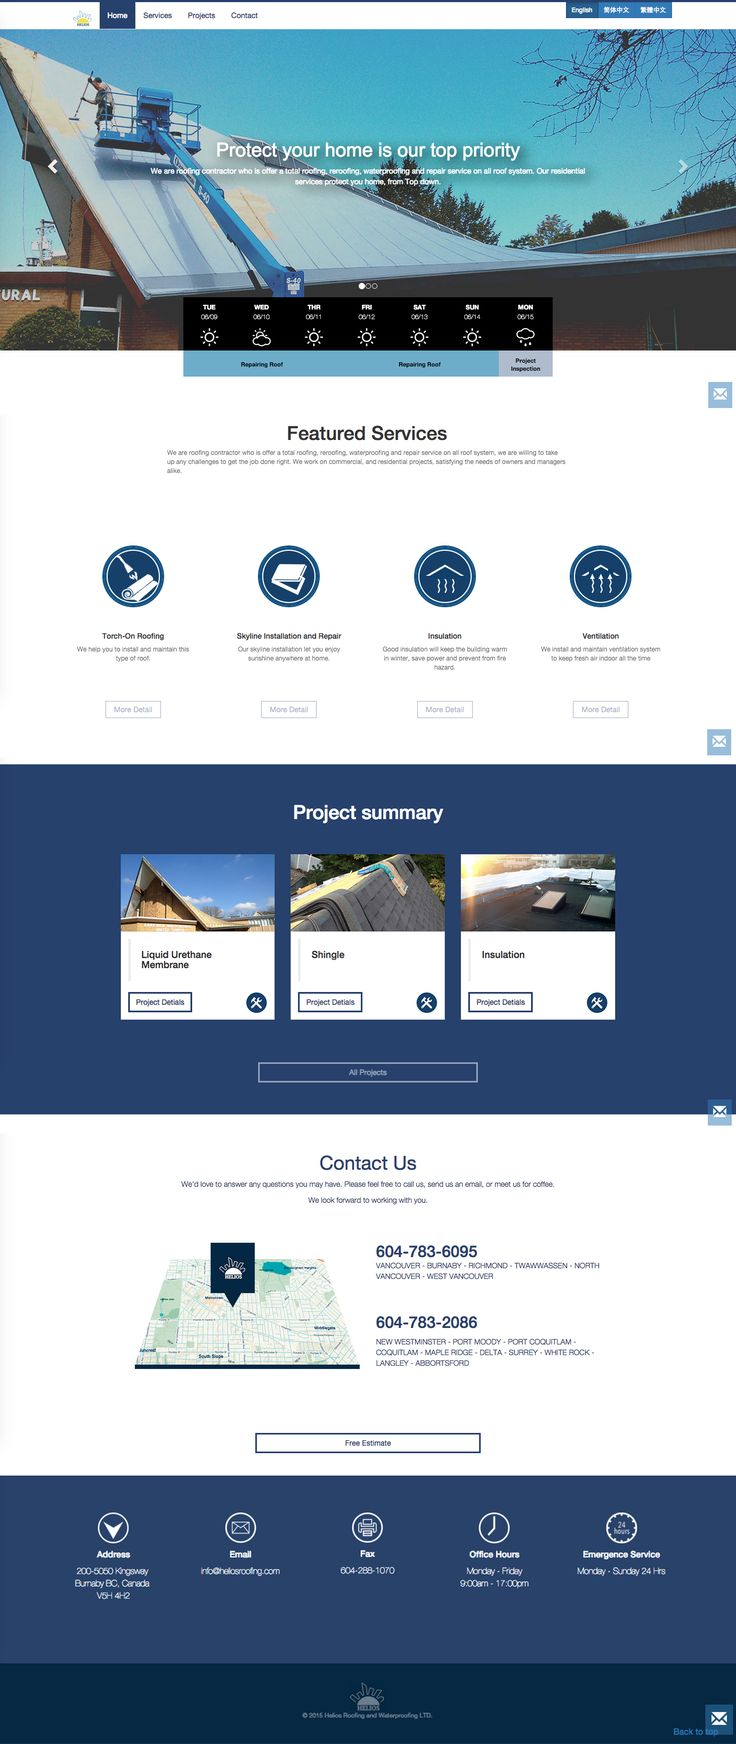 Roofing, Web design, Flat design, navy blue theme, one color web design, one page design, home page. Design and developed by jing studio, welcome to visit jingstudio.com